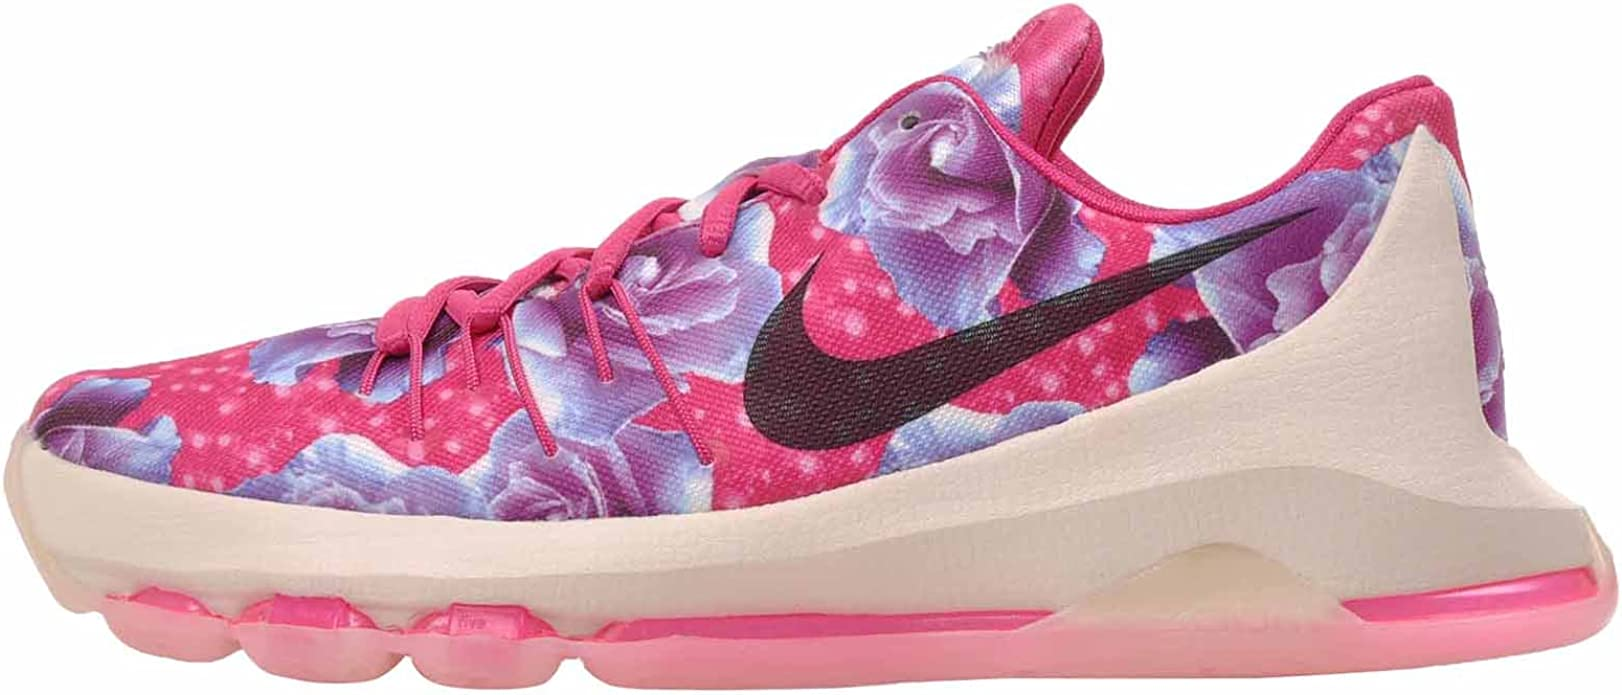 Nike KD 8 Aunt Pearl GS Pink 837786-603